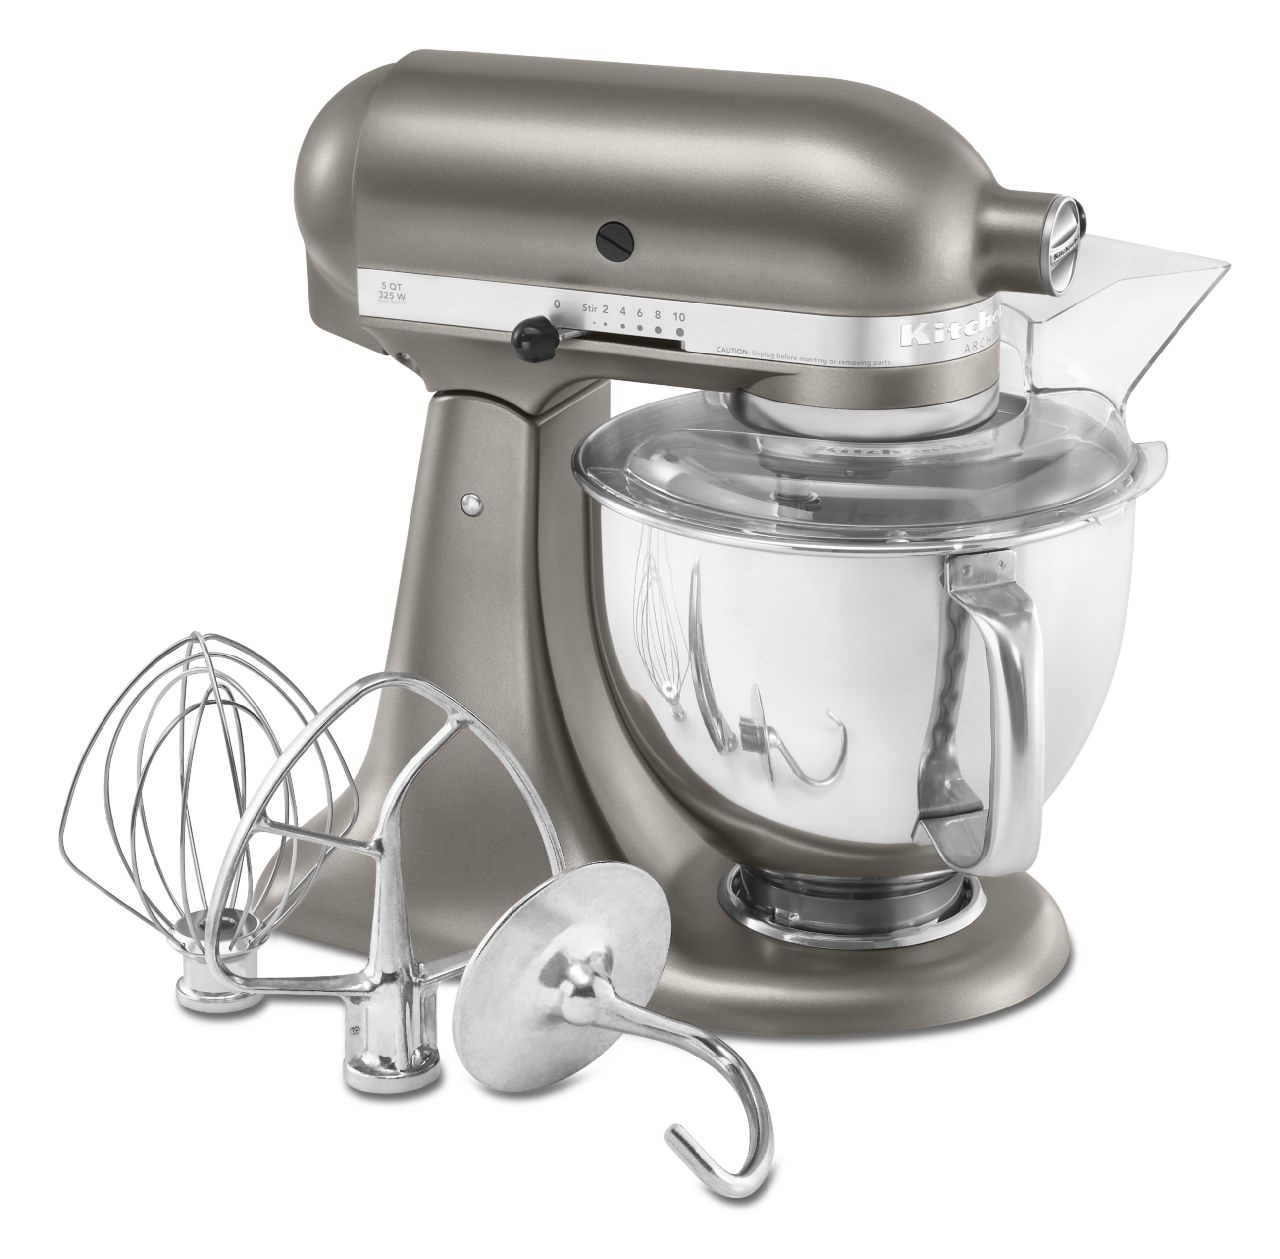 KitchenAid-Refurbished-Artisan-Series-5-Quart-Tilt-Head-Stand-Mixer-RRK150 thumbnail 36